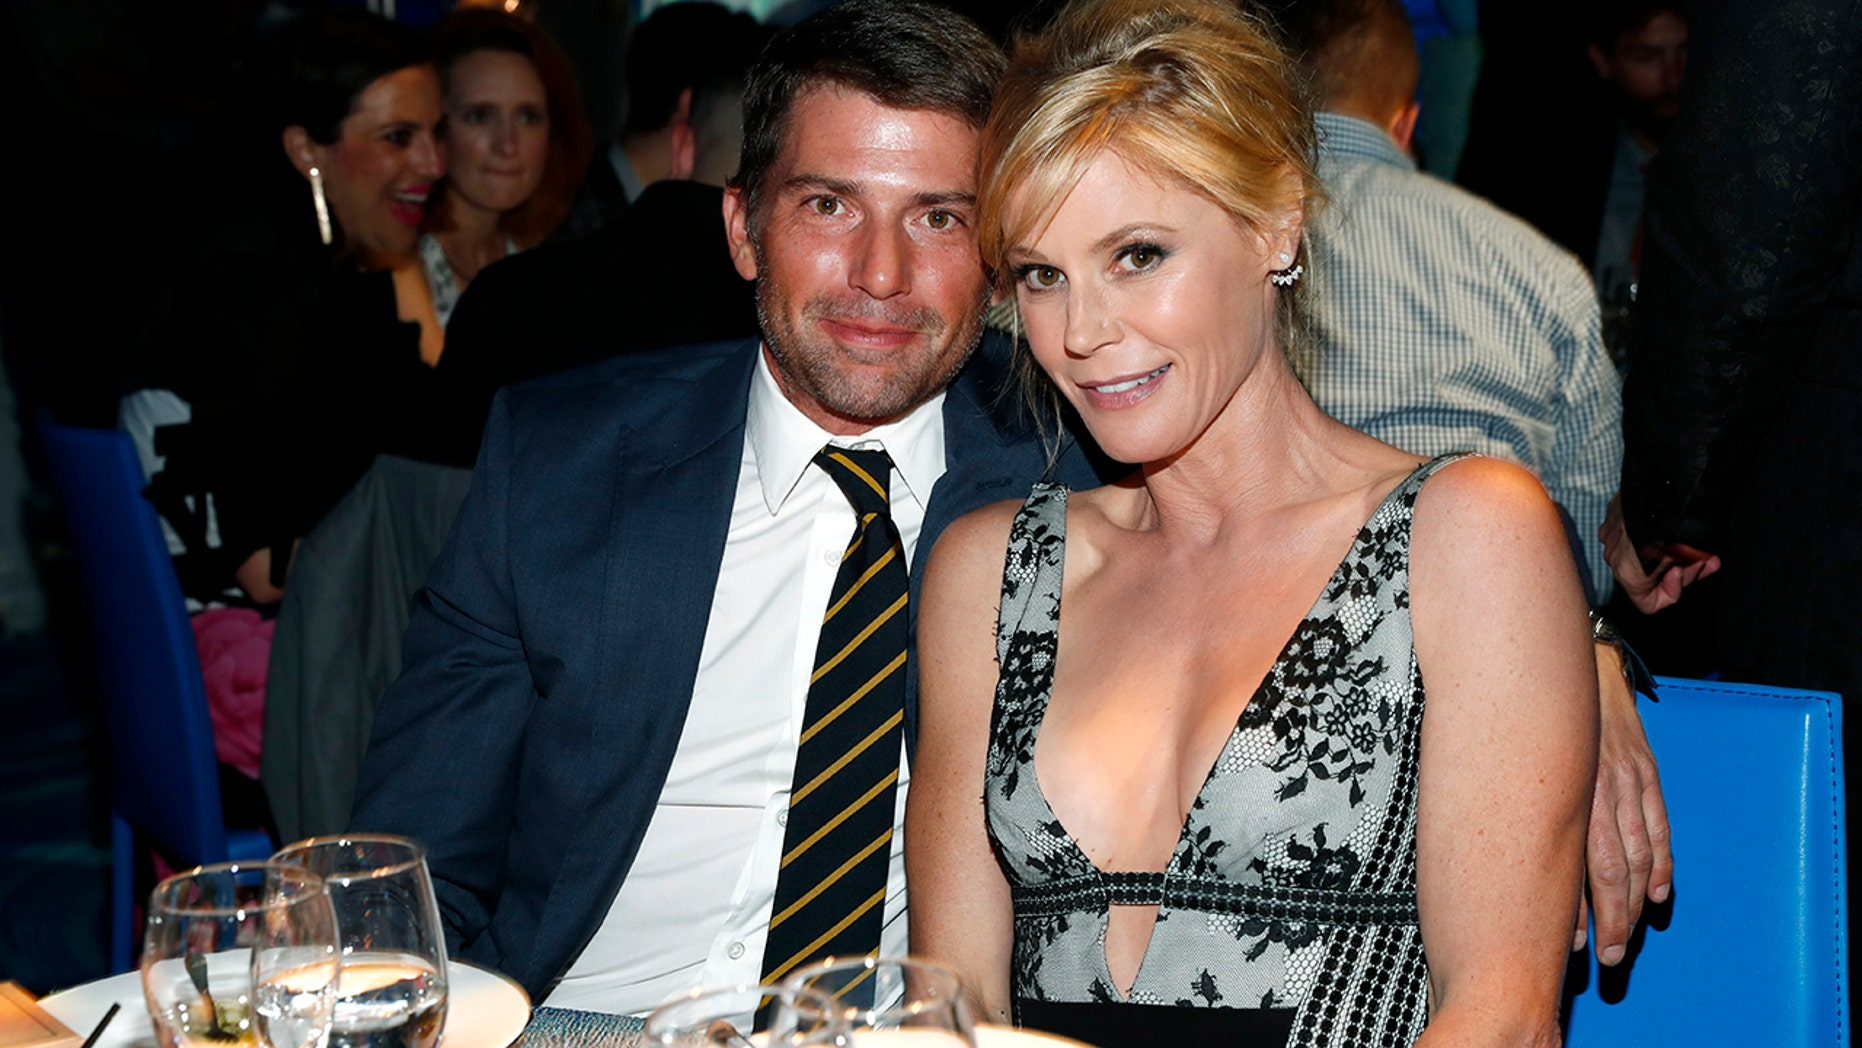 Scott Phillips (L) and actress Julie Bowen attend the Los Angeles LGBT Center 47th Anniversary Gala Vanguard Awards at Pacific Design Center on September 24, 2016 in West Hollywood, California.